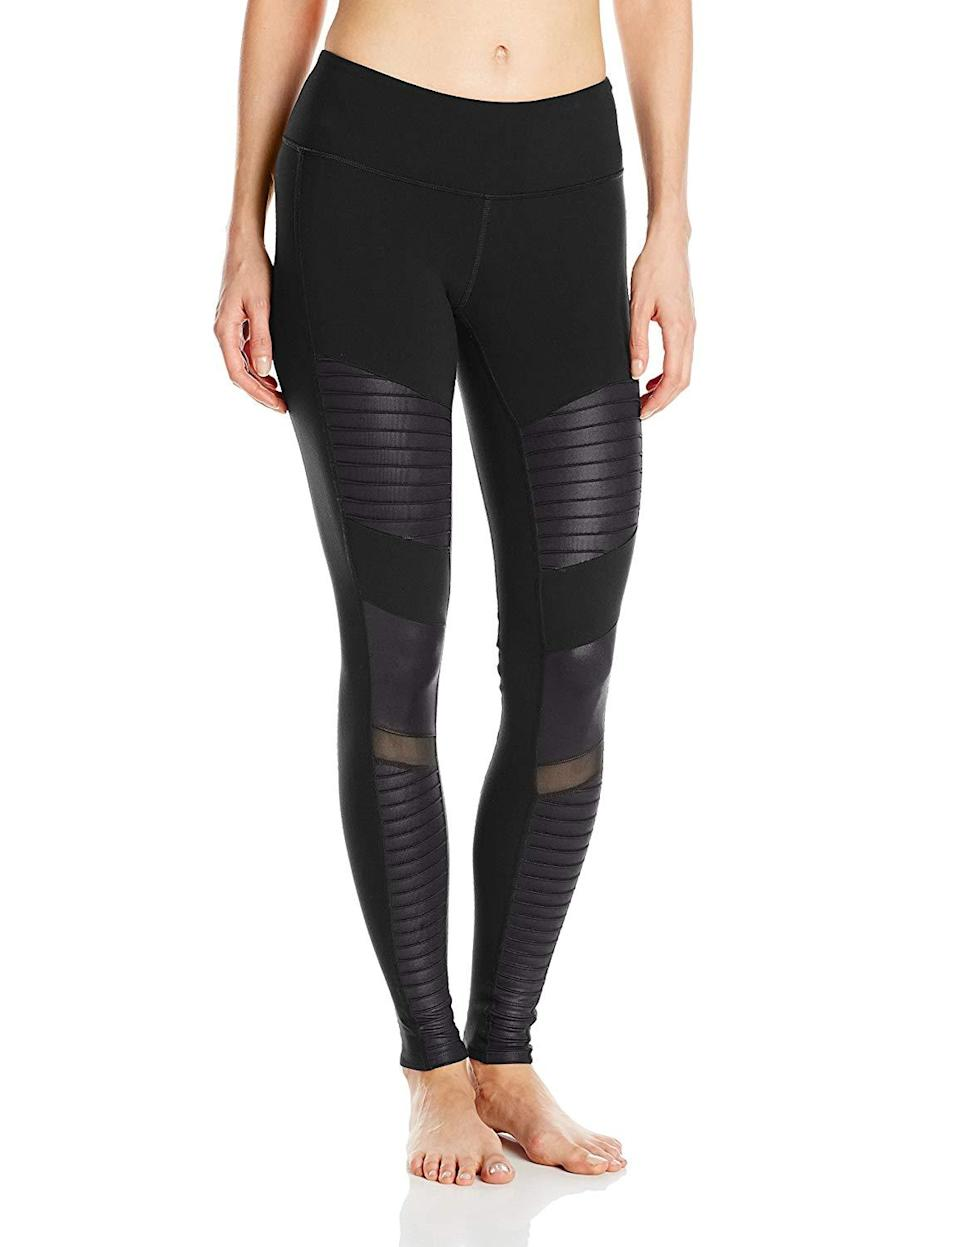 "<h3><a href=""https://www.amazon.com/Alo-Yoga-Womens-Legging-Glossy/dp/B00UUGWRCS"" rel=""nofollow noopener"" target=""_blank"" data-ylk=""slk:Alo Yoga Moto Legging"" class=""link rapid-noclick-resp"">Alo Yoga Moto Legging</a> </h3><br><br>4.5 out of 5 stars and 271 reviews<br><br><strong>Promising Review:</strong> One reviewer, <a href=""https://www.amazon.com/gp/customer-reviews/R38XW0ERHM85PS"" rel=""nofollow noopener"" target=""_blank"" data-ylk=""slk:Kathy"" class=""link rapid-noclick-resp"">Kathy</a>, is sure these moto inspired leggings will make your ex eat their heart out: ""Best leggings I have ever worn. I have probably got more than 70 pair of leggings. Some great, some eh. I bought two pair of Alo leggings for the first time and both pairs are absolutely fantastic!! The fit is awesome. I feel like a million bucks when I wear them. Sometimes when you leave the house you think perhaps I could have made more of an effort. When I put these on I feel ready to meet my future ex-husband!! The price is totally worth it. I love them!!""<br><br><strong>Alo Yoga</strong> Moto Legging, $, available at <a href=""https://www.amazon.com/Alo-Yoga-Womens-Legging-Glossy/dp/B00UUGWRCS/"" rel=""nofollow noopener"" target=""_blank"" data-ylk=""slk:Amazon"" class=""link rapid-noclick-resp"">Amazon</a>"